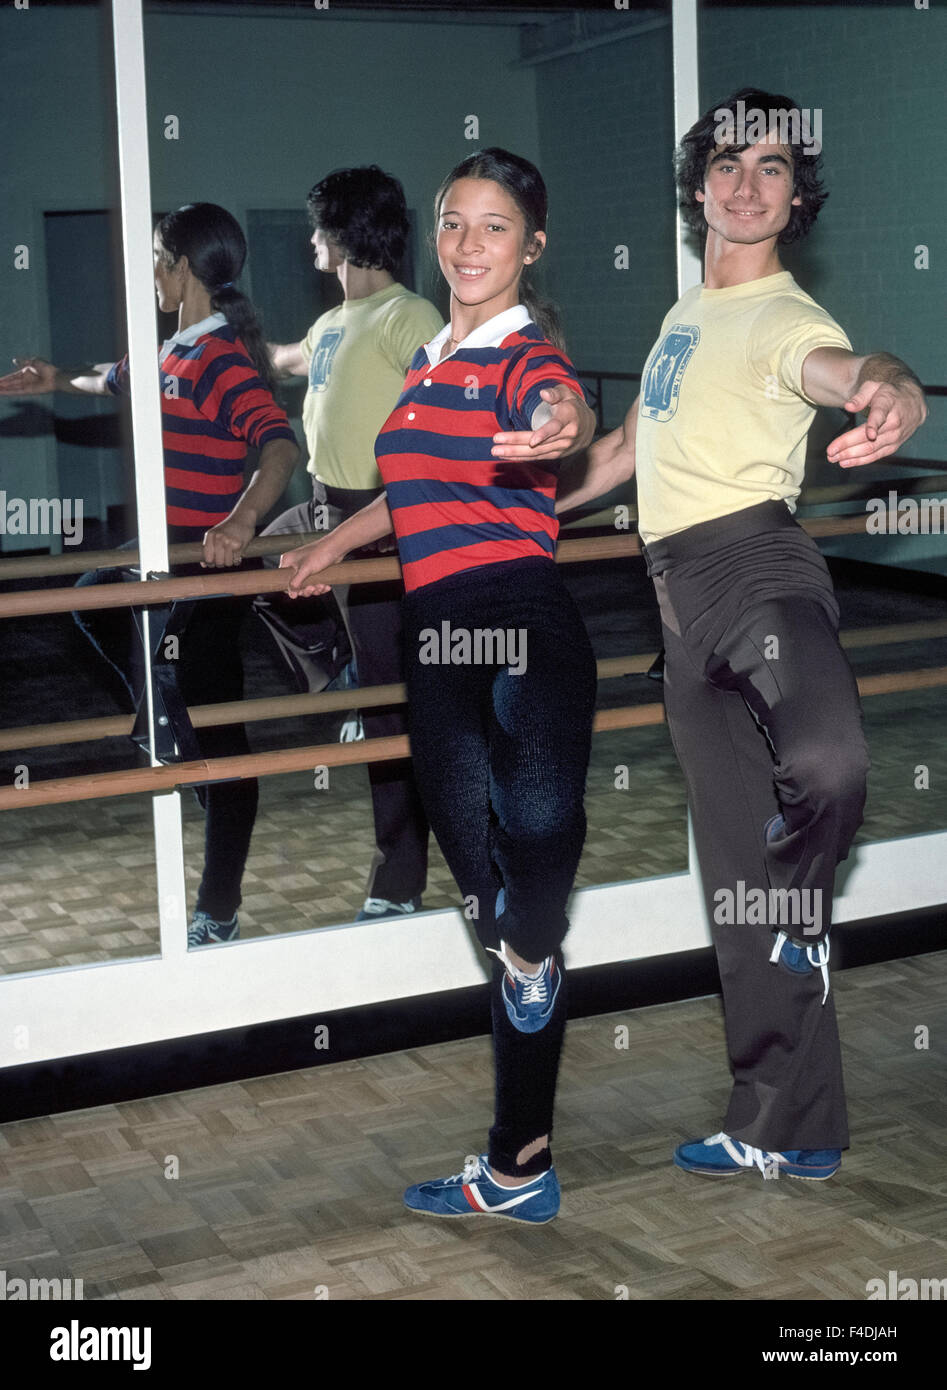 American teenagers Tai Babilonia, 18, and Randy Gardner, 19, exercise before practicing their pair ice skating routines - Stock Image